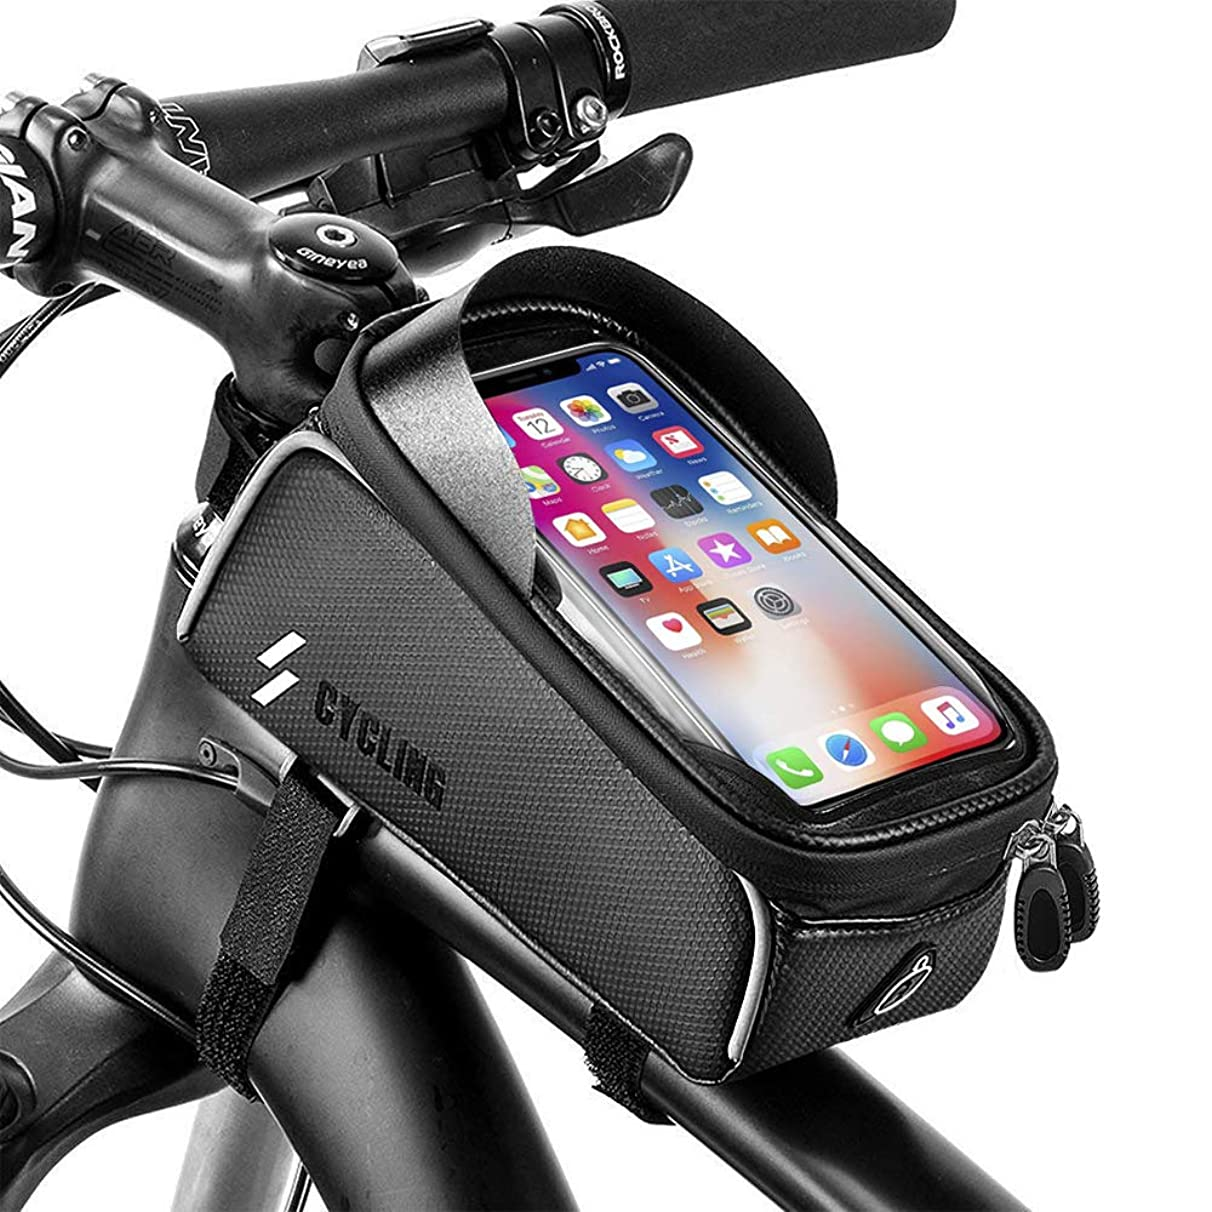 Bike Bicycle Phone Bags Waterproof - Front Frame Top Tube Mount Handlebar Bags with Touch Screen Phone Holder Case Sports Bicycle Bike Storage Bag Cycling Pack Fits iPhone 7 8 Plus xs max